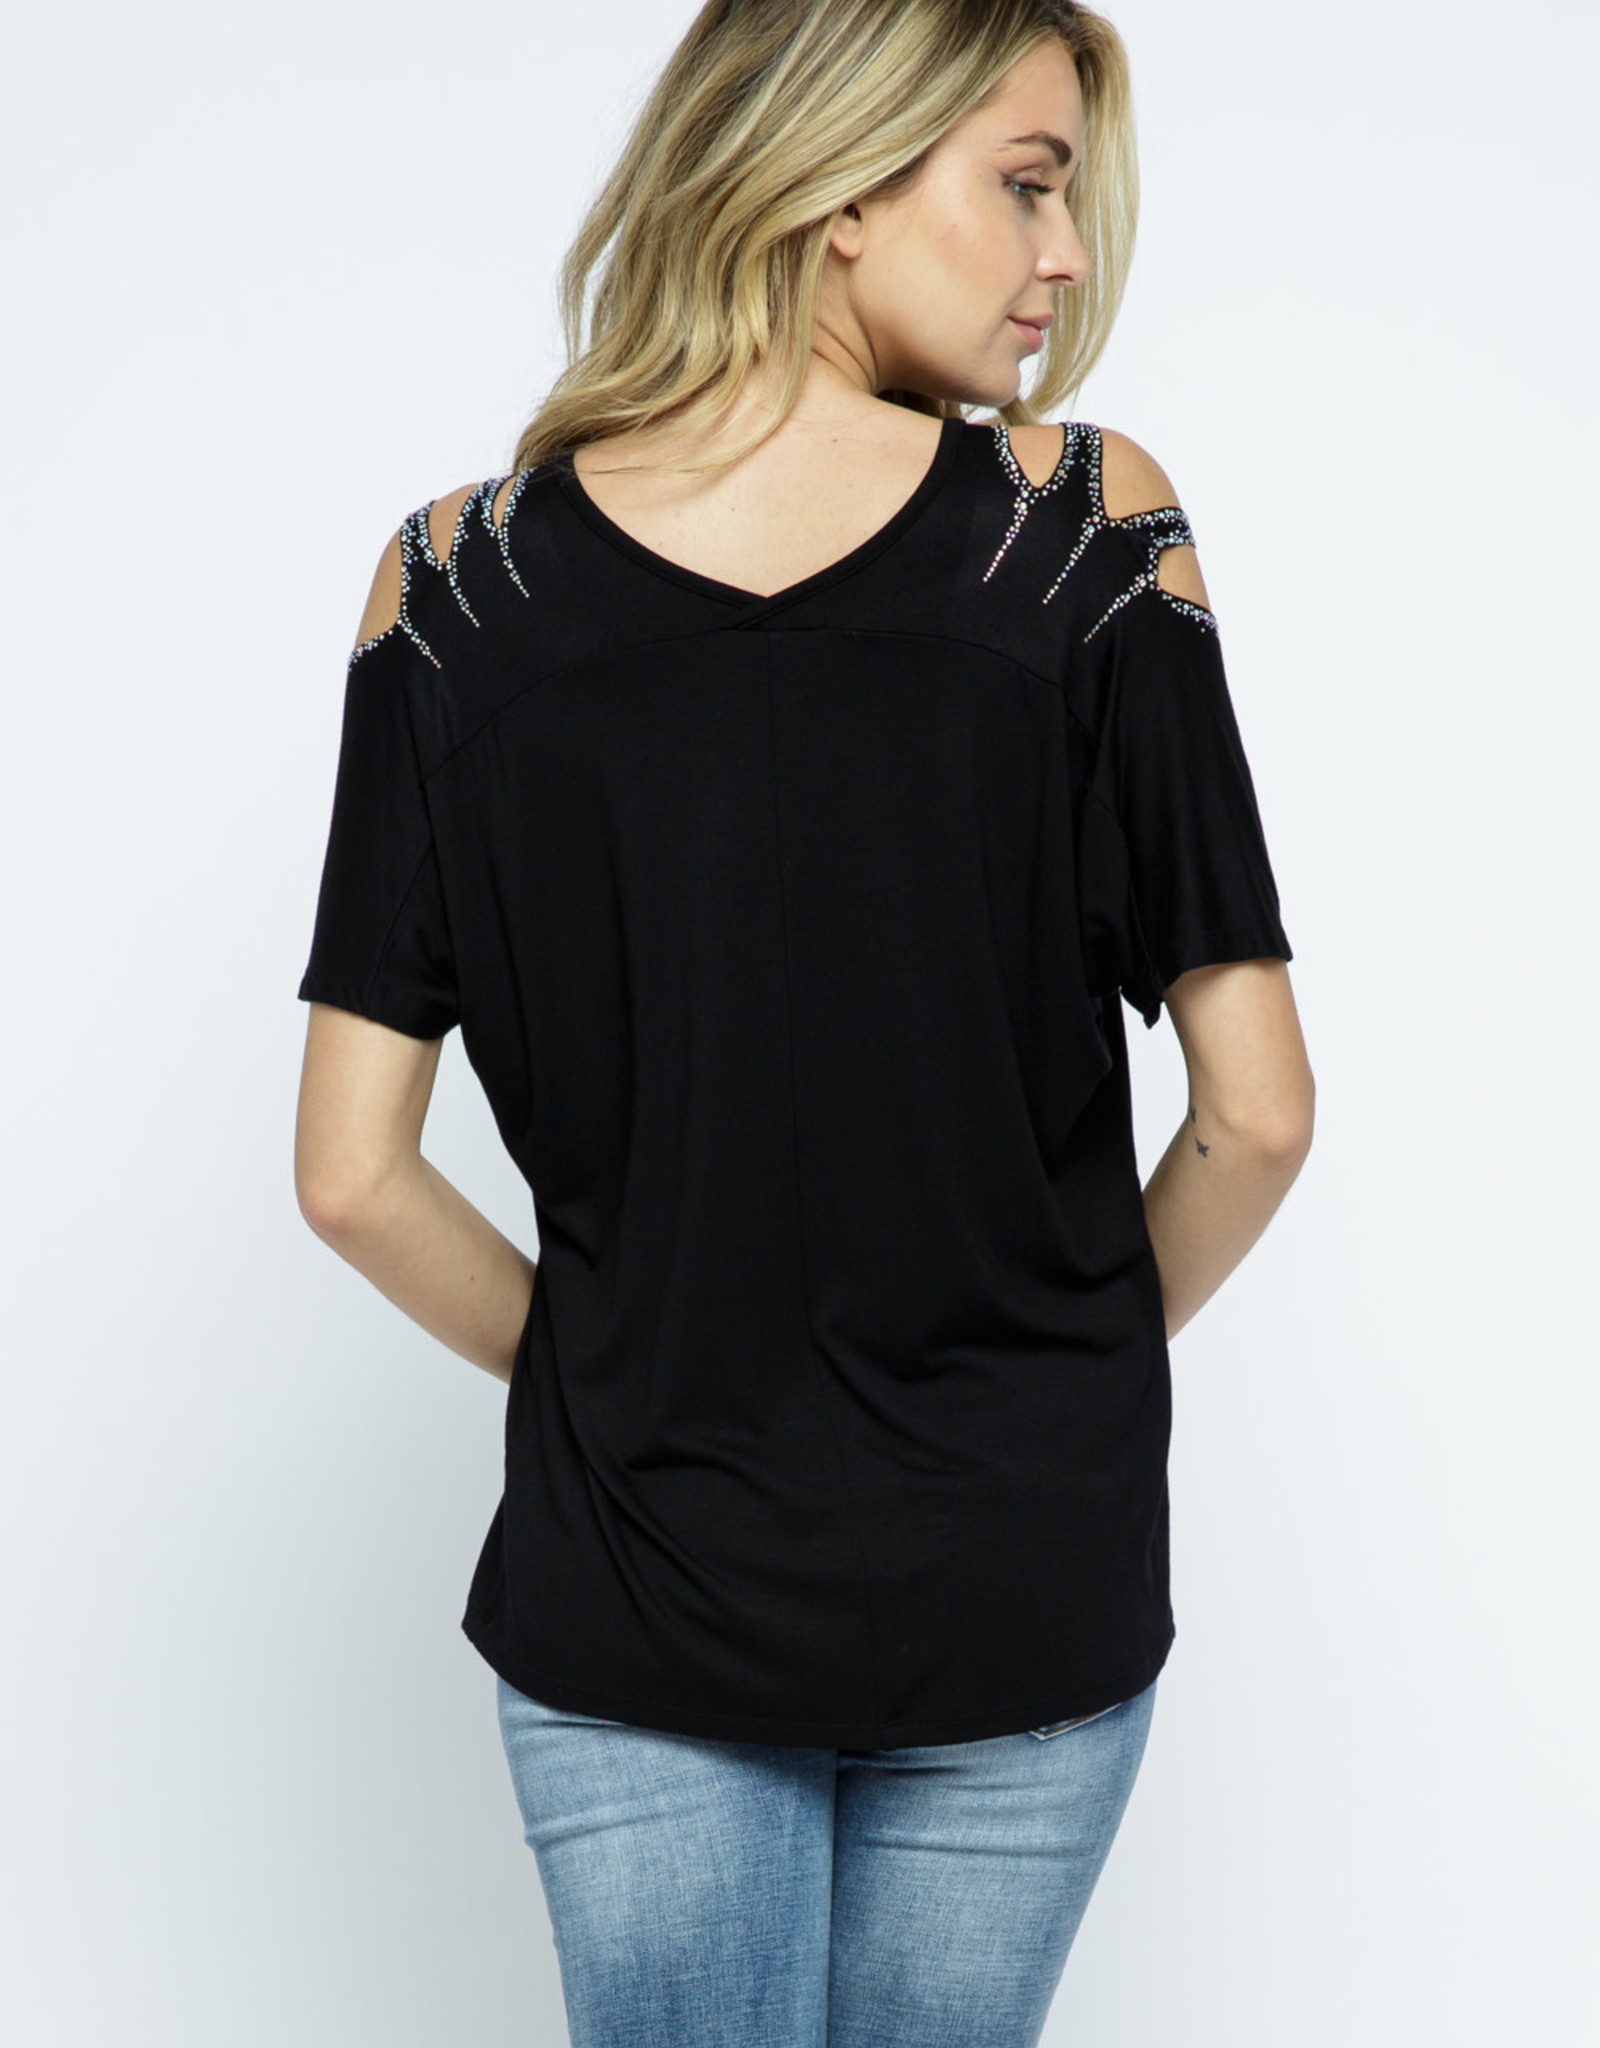 Short Sleeve with  Laser Cut and Rhinestone Shoulder